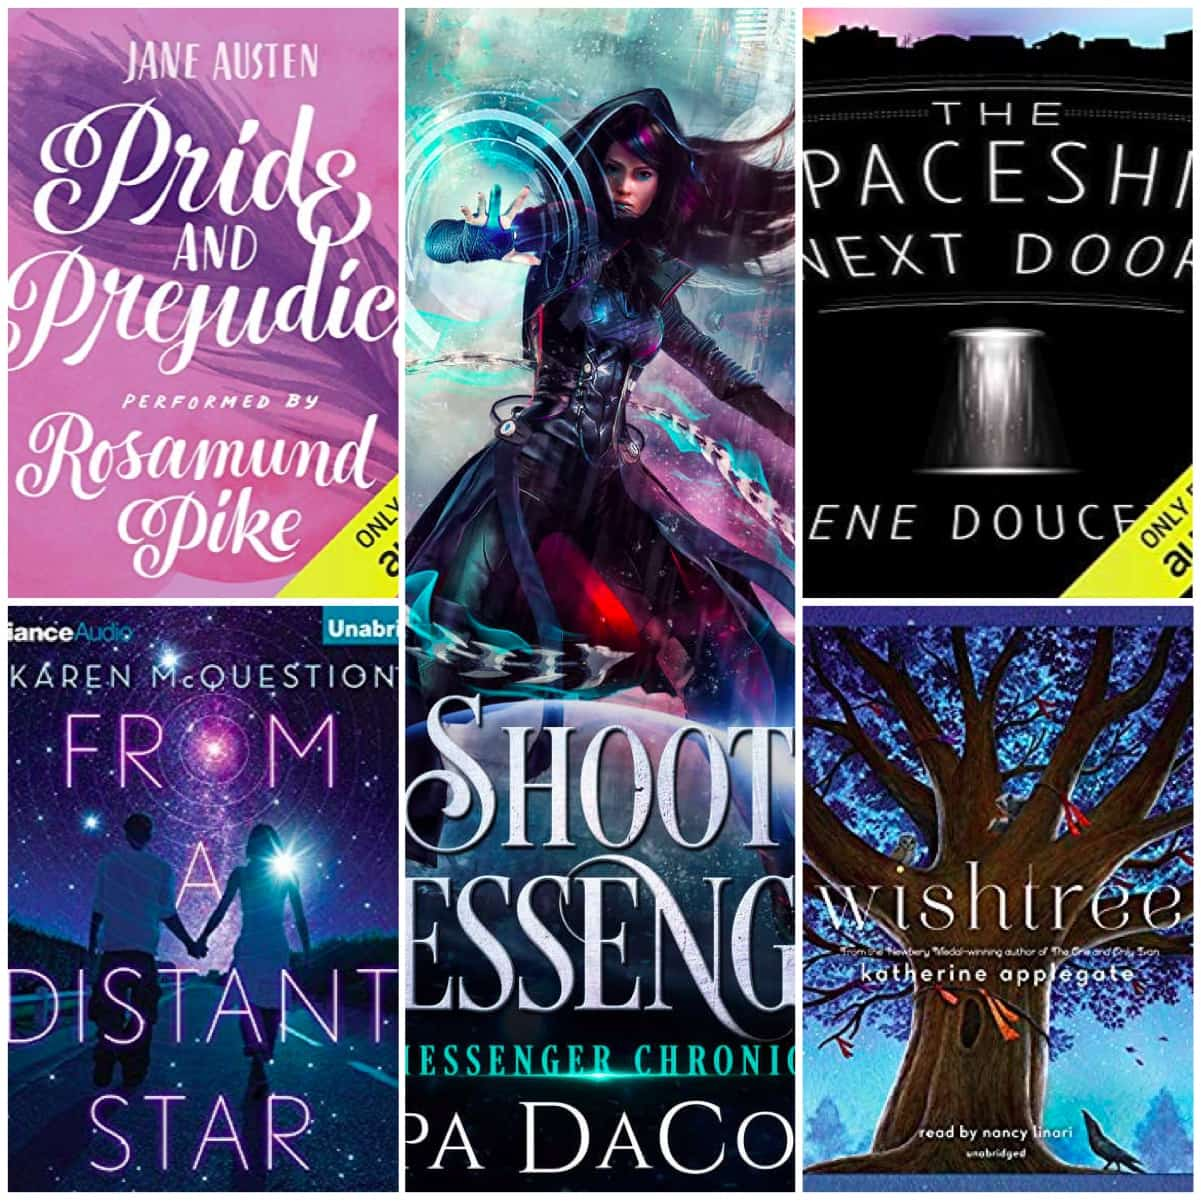 I got some actual reading done on my Kindle! And there were also plenty of audiobooks listened to in the past few months including a new favorite YA sci-fi book!